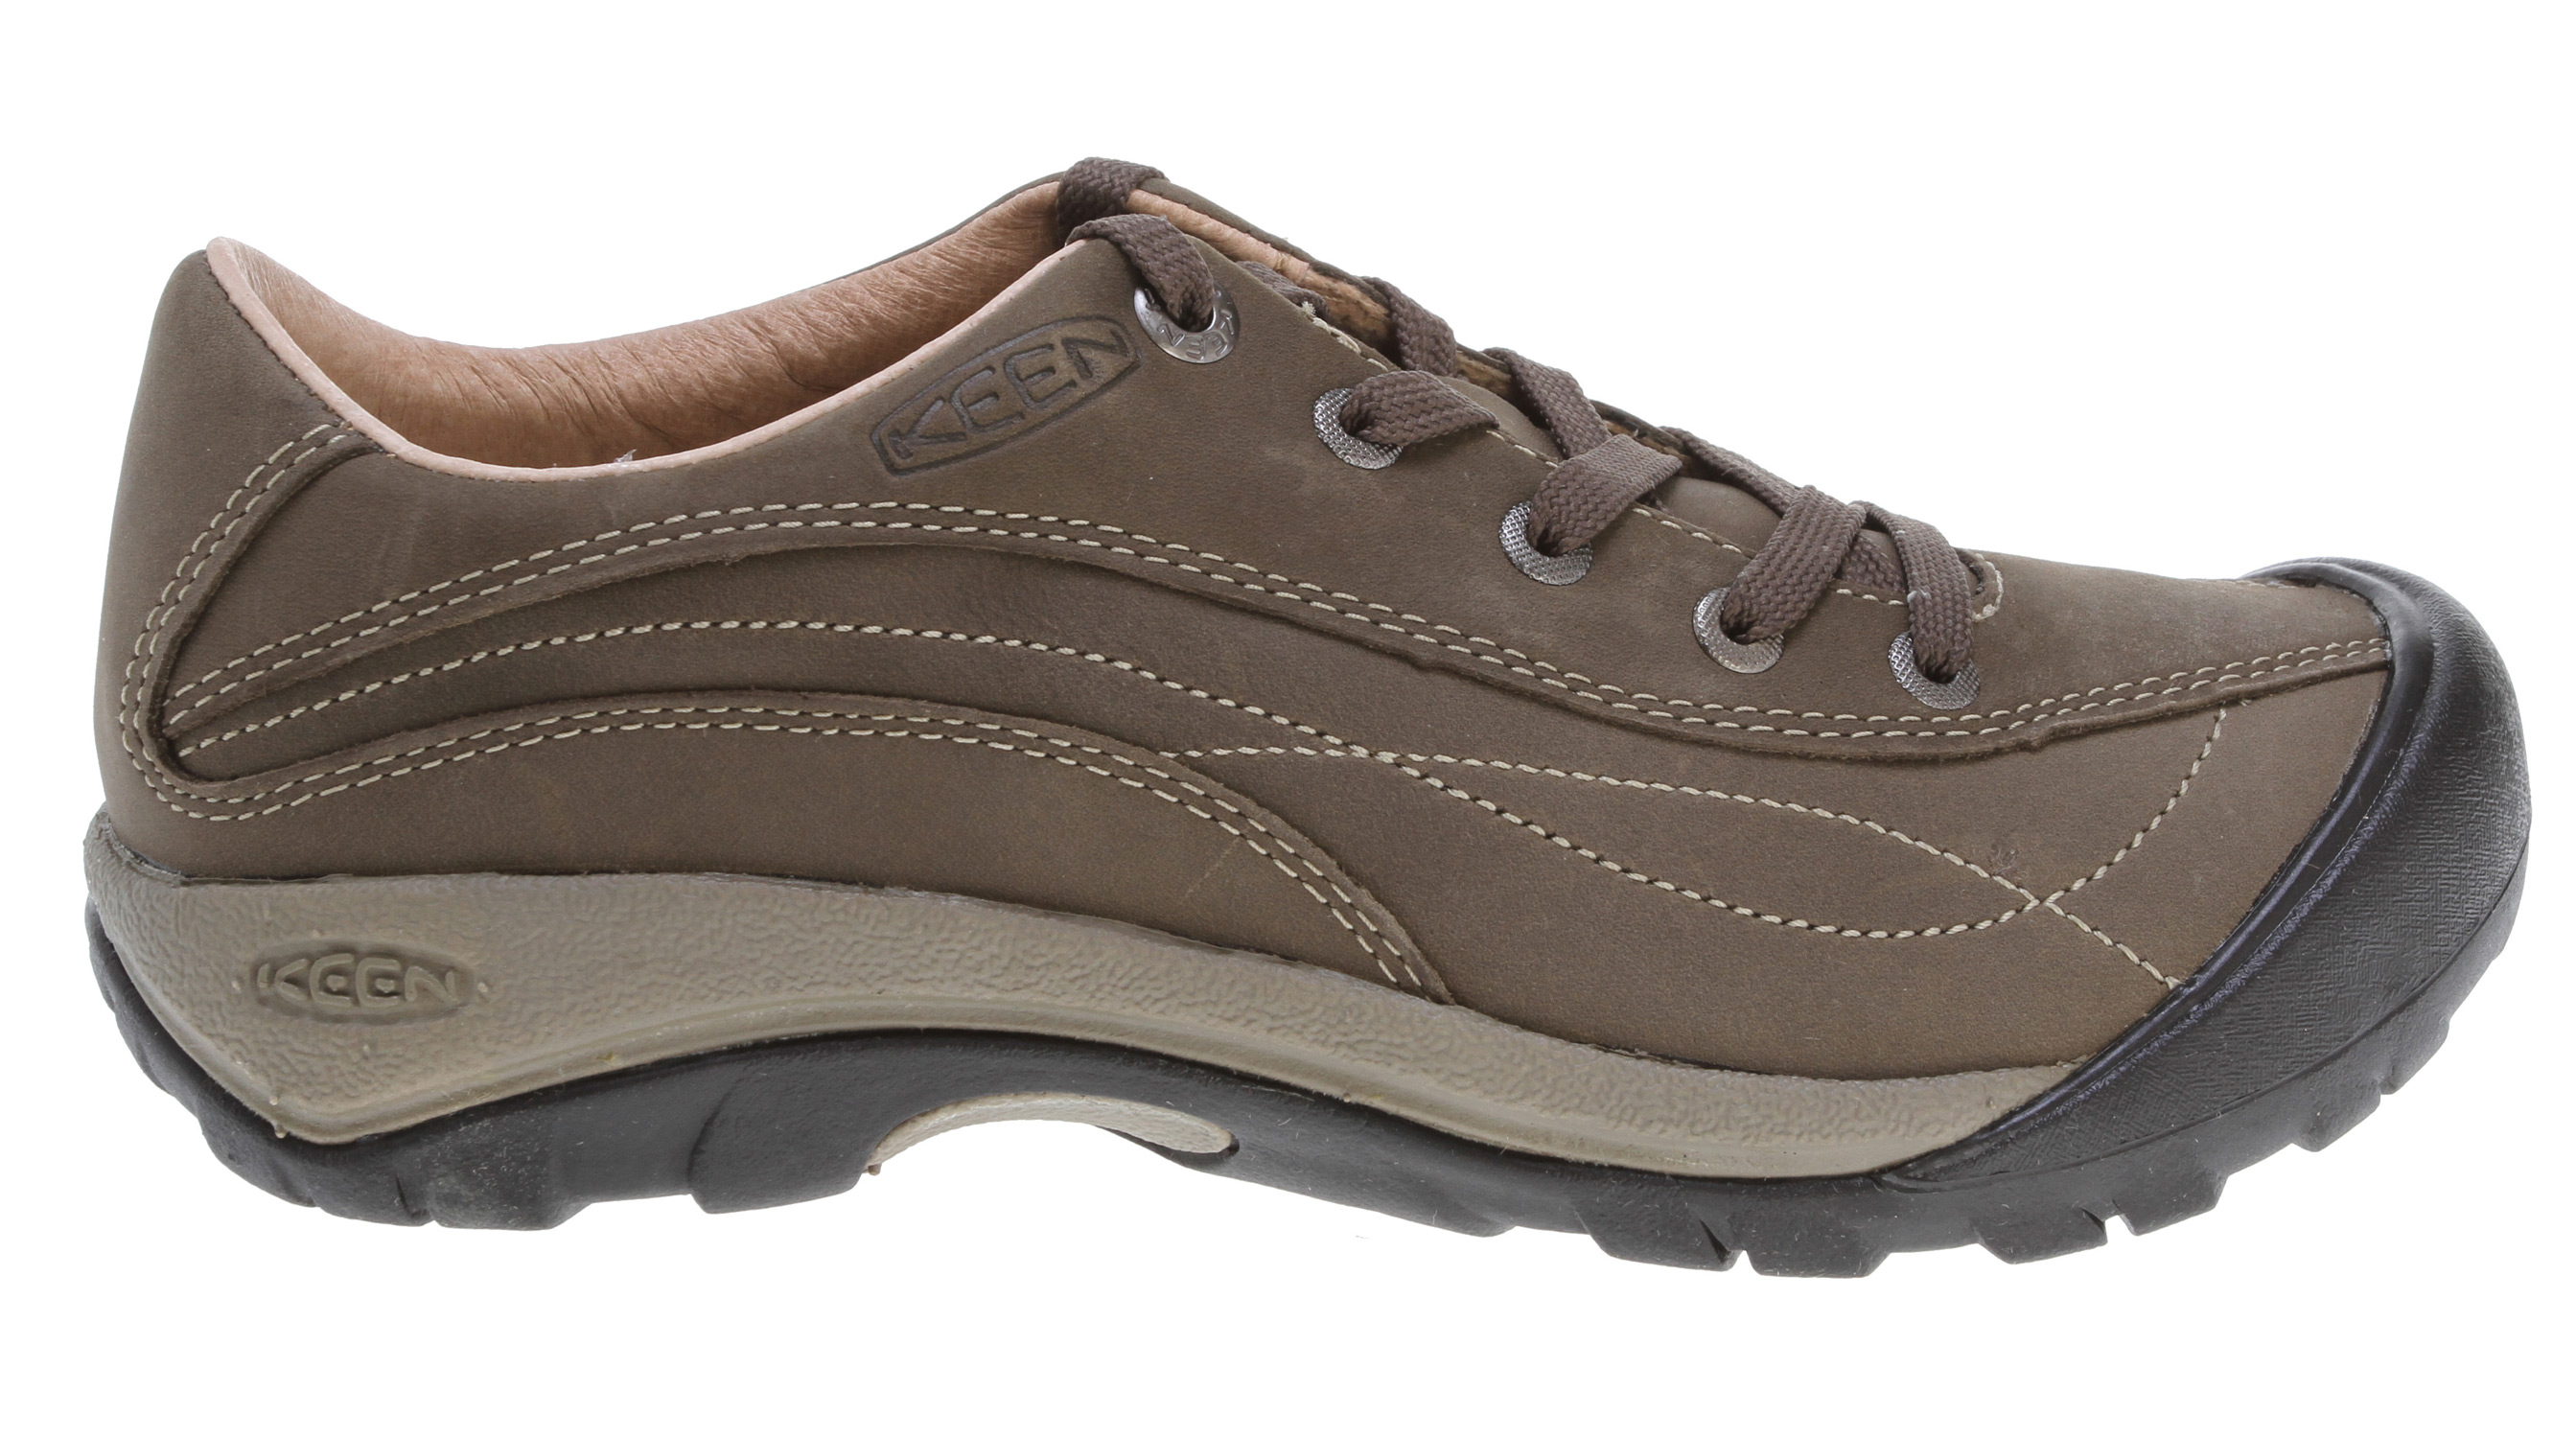 Feminine lace-up style on the top; tough, no-nonsense KEEN outsole underneath. Ready for whatever urban adventure life can dish out, the Toyah offers practical style in a shoe comfortable enough to keep you smiling through a day on your feet. The oiled nubuck leather upper features accented top stitching and classic KEEN toe protection, while a comfy anatomical footbed and active outsole provide support.Key Features of the Keen Toyah Shoes: Classic oxford lace design Compression molded EVA midsole Non-marking rubber outsole Patented toe protection Removable metatomical dual density EVA footbed Waterproof nubuck leather upper Weight: 11.64 oz/330.58 g Activities: City Streets Type: Shoes: Light Rain not for puddles Fit Tip: We find this style runs pretty true to size Lining: Leather Upper: Waterproof nubuck Rubber: Non-marking rubber outsole - $65.95